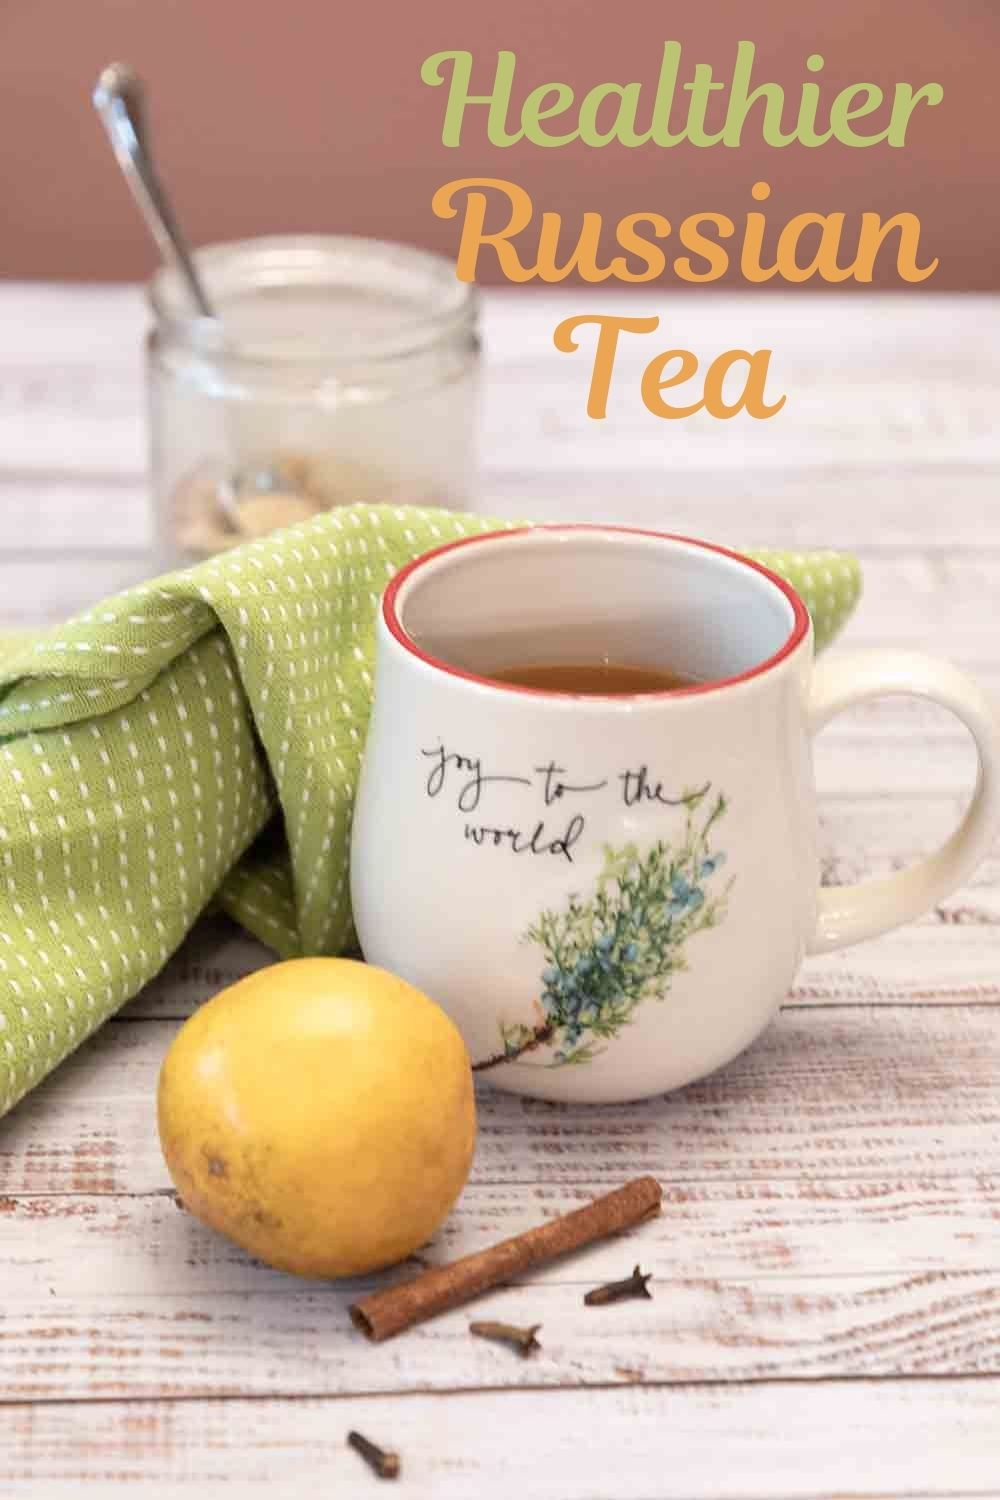 Hot, sweet & flavored with orange, lemon, cinnamon, cloves, Russian Tea makes a warming & restorative winter beverage. AKA Friendship Tea.